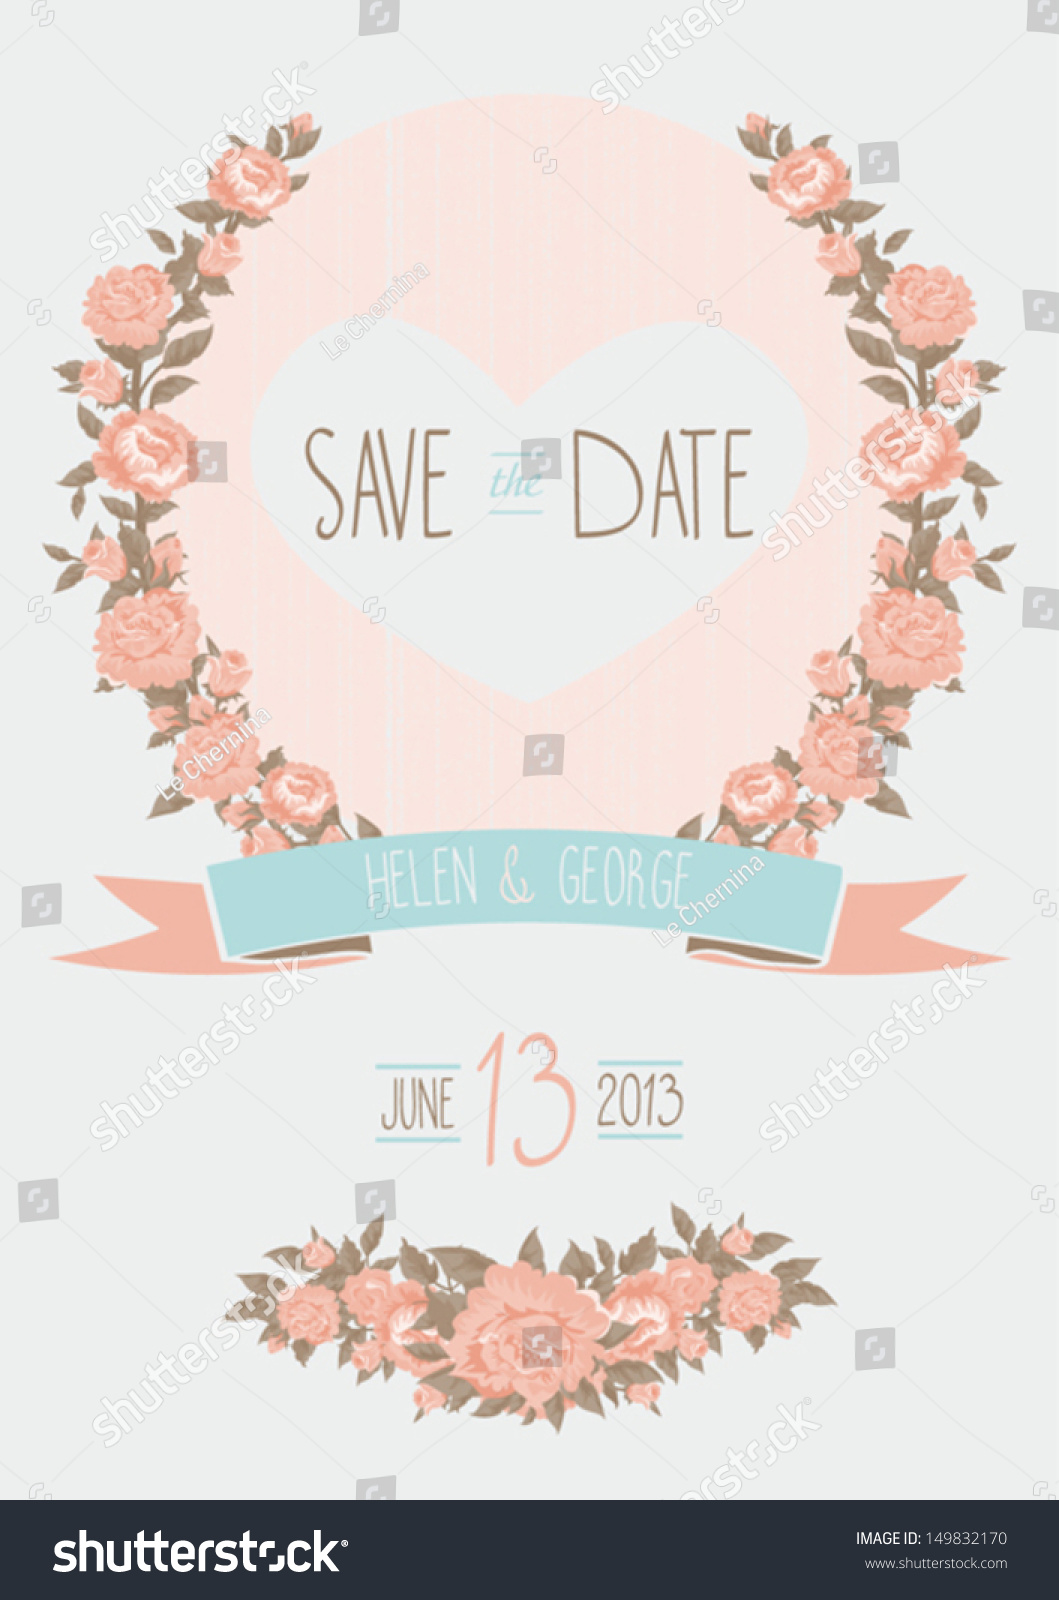 Cute Baby Sorry Hd Wallpaper Save Date Wedding Invitation Shabby Chic Stock Vector